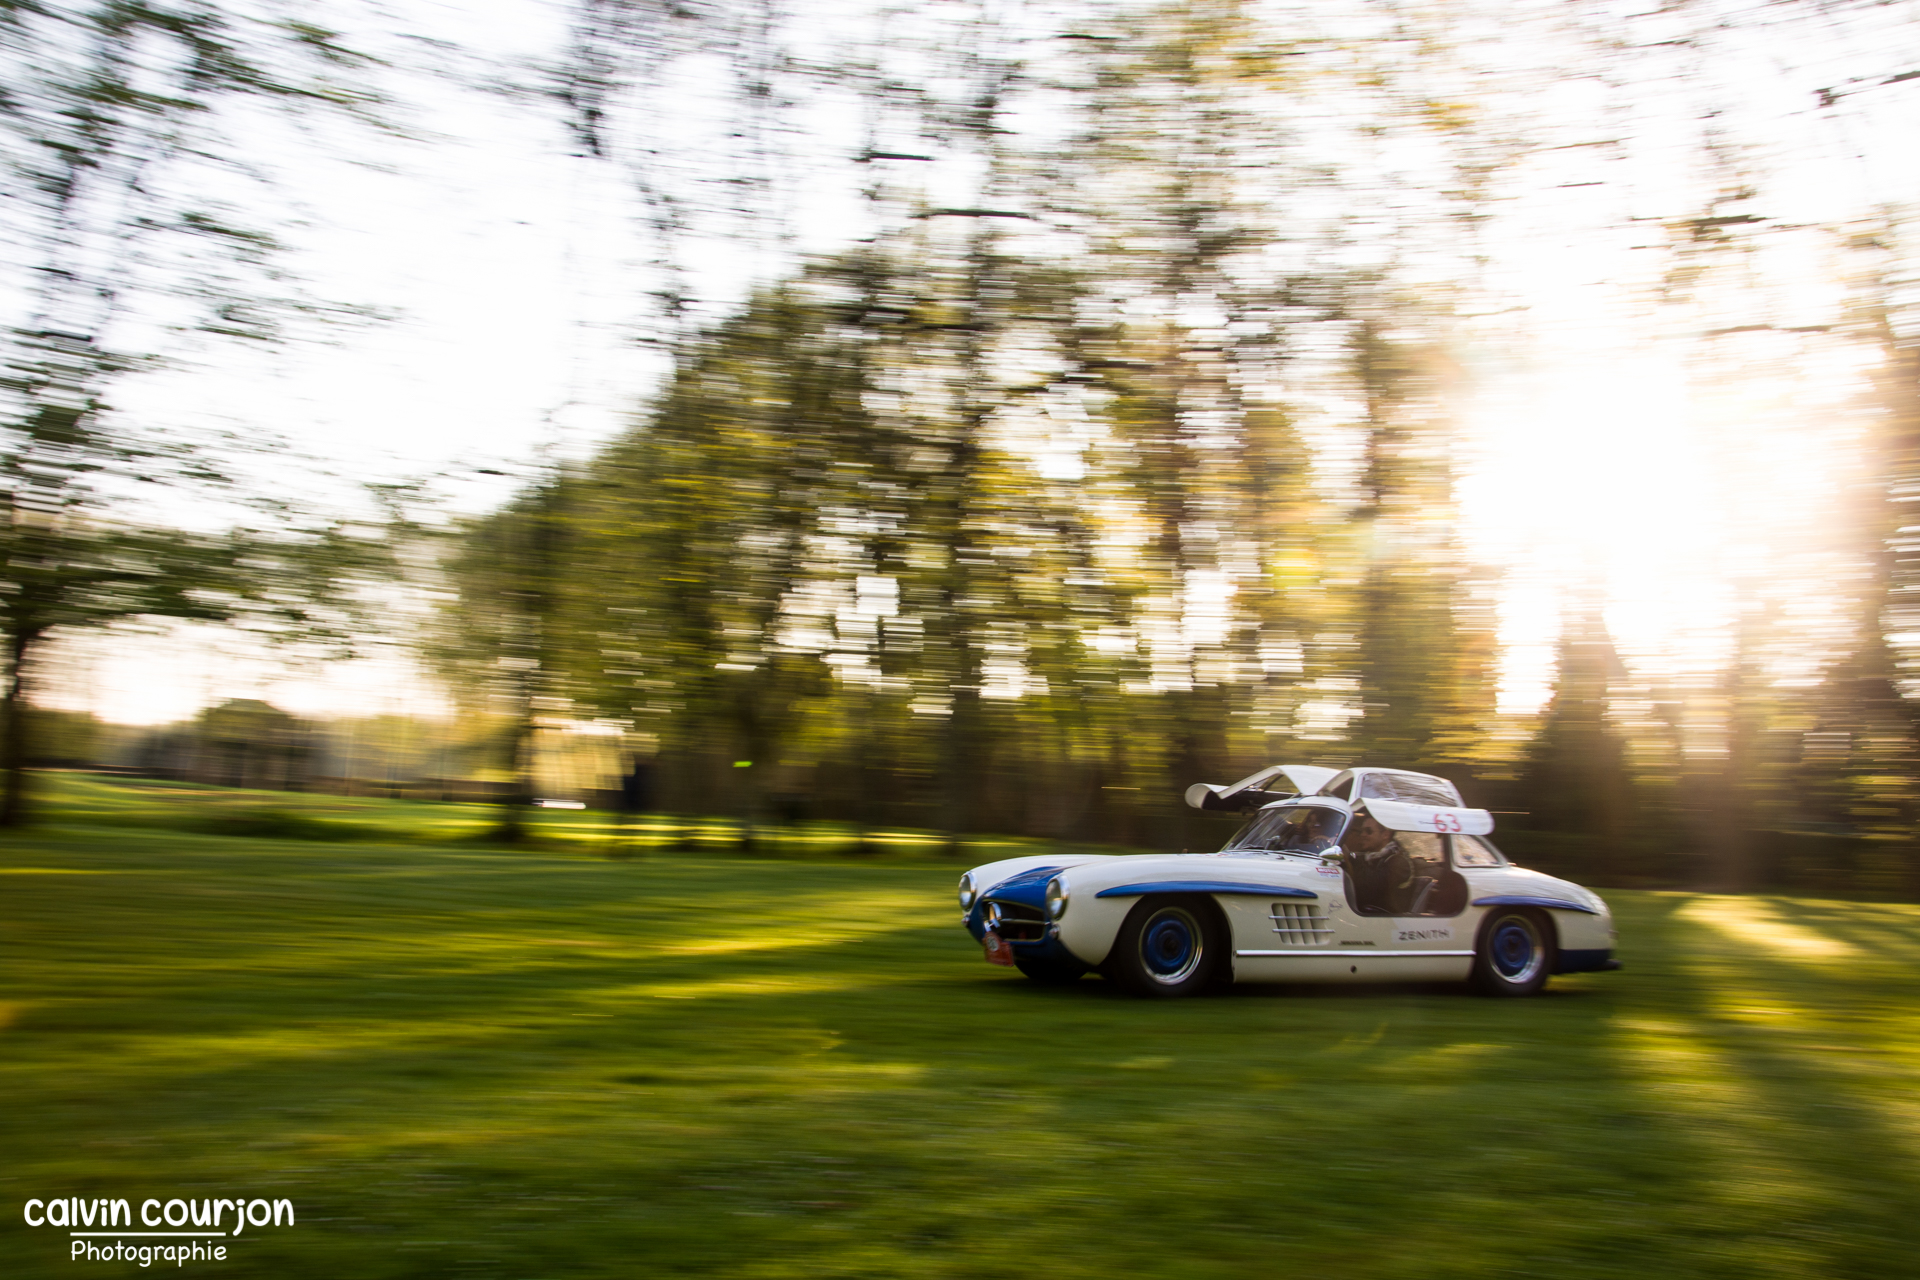 Mercedes 300 SL Gullwing - Tour Auto 2015 - Calvin Courjon Photographie